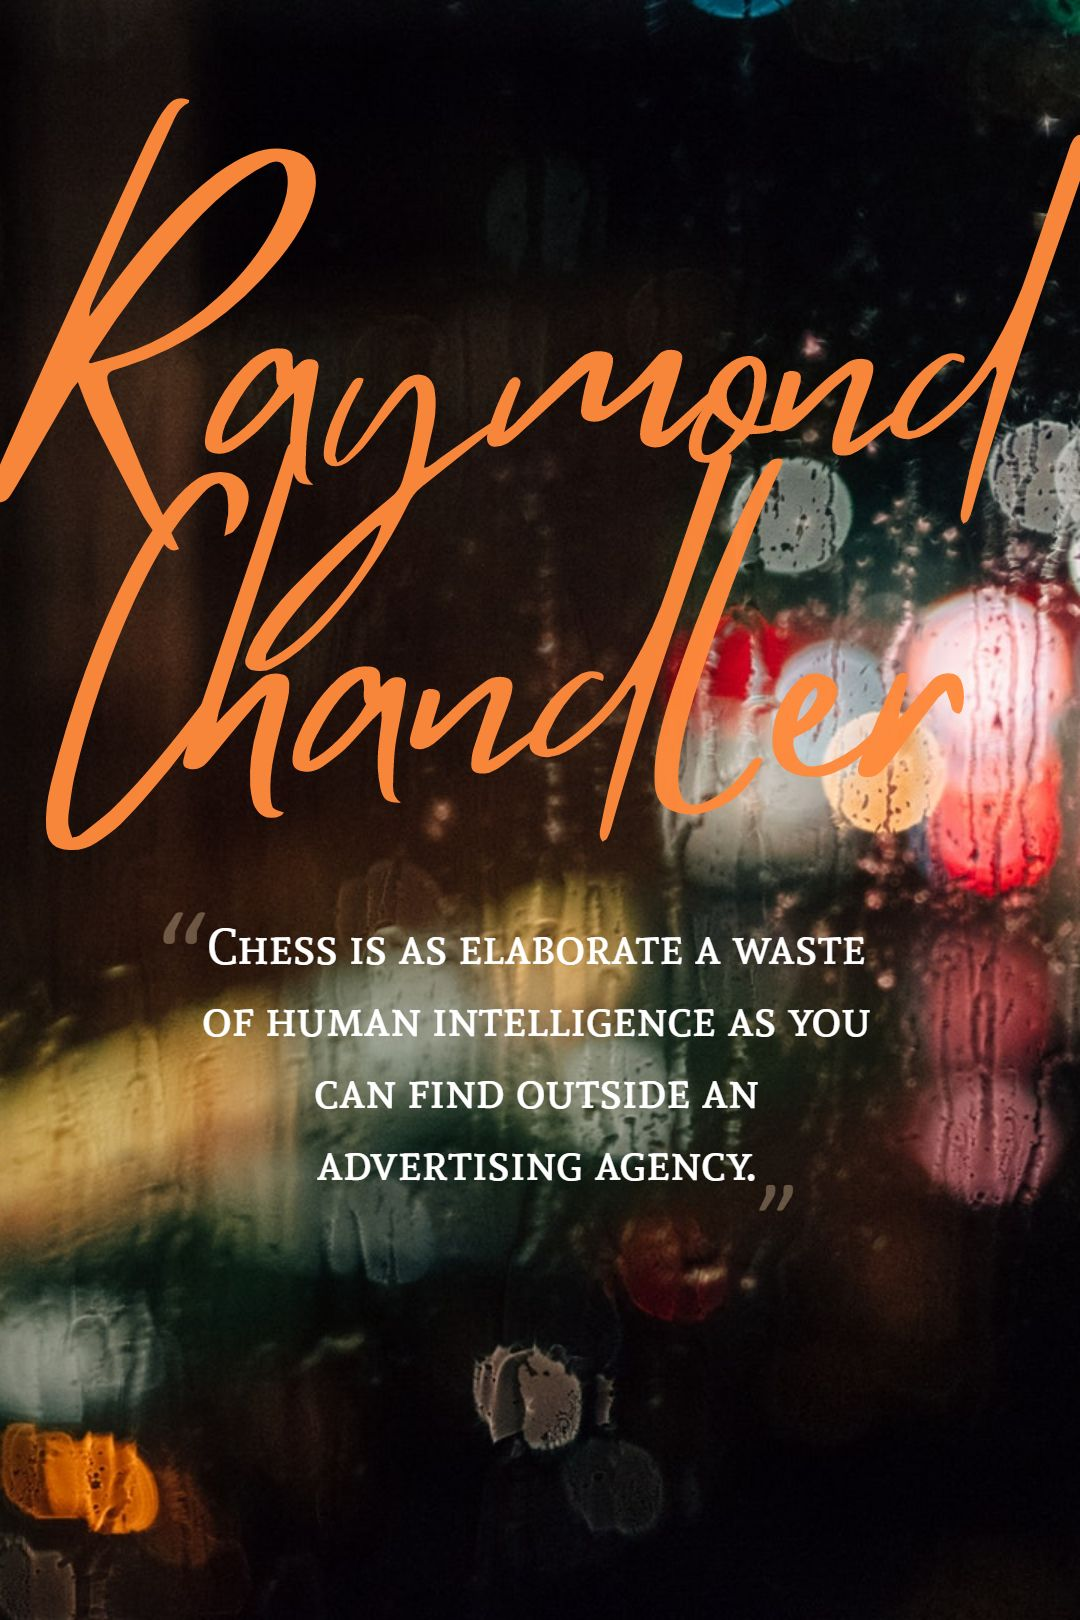 Quotes image of Chess is as elaborate a waste of human intelligence as you can find outside an advertising agency.